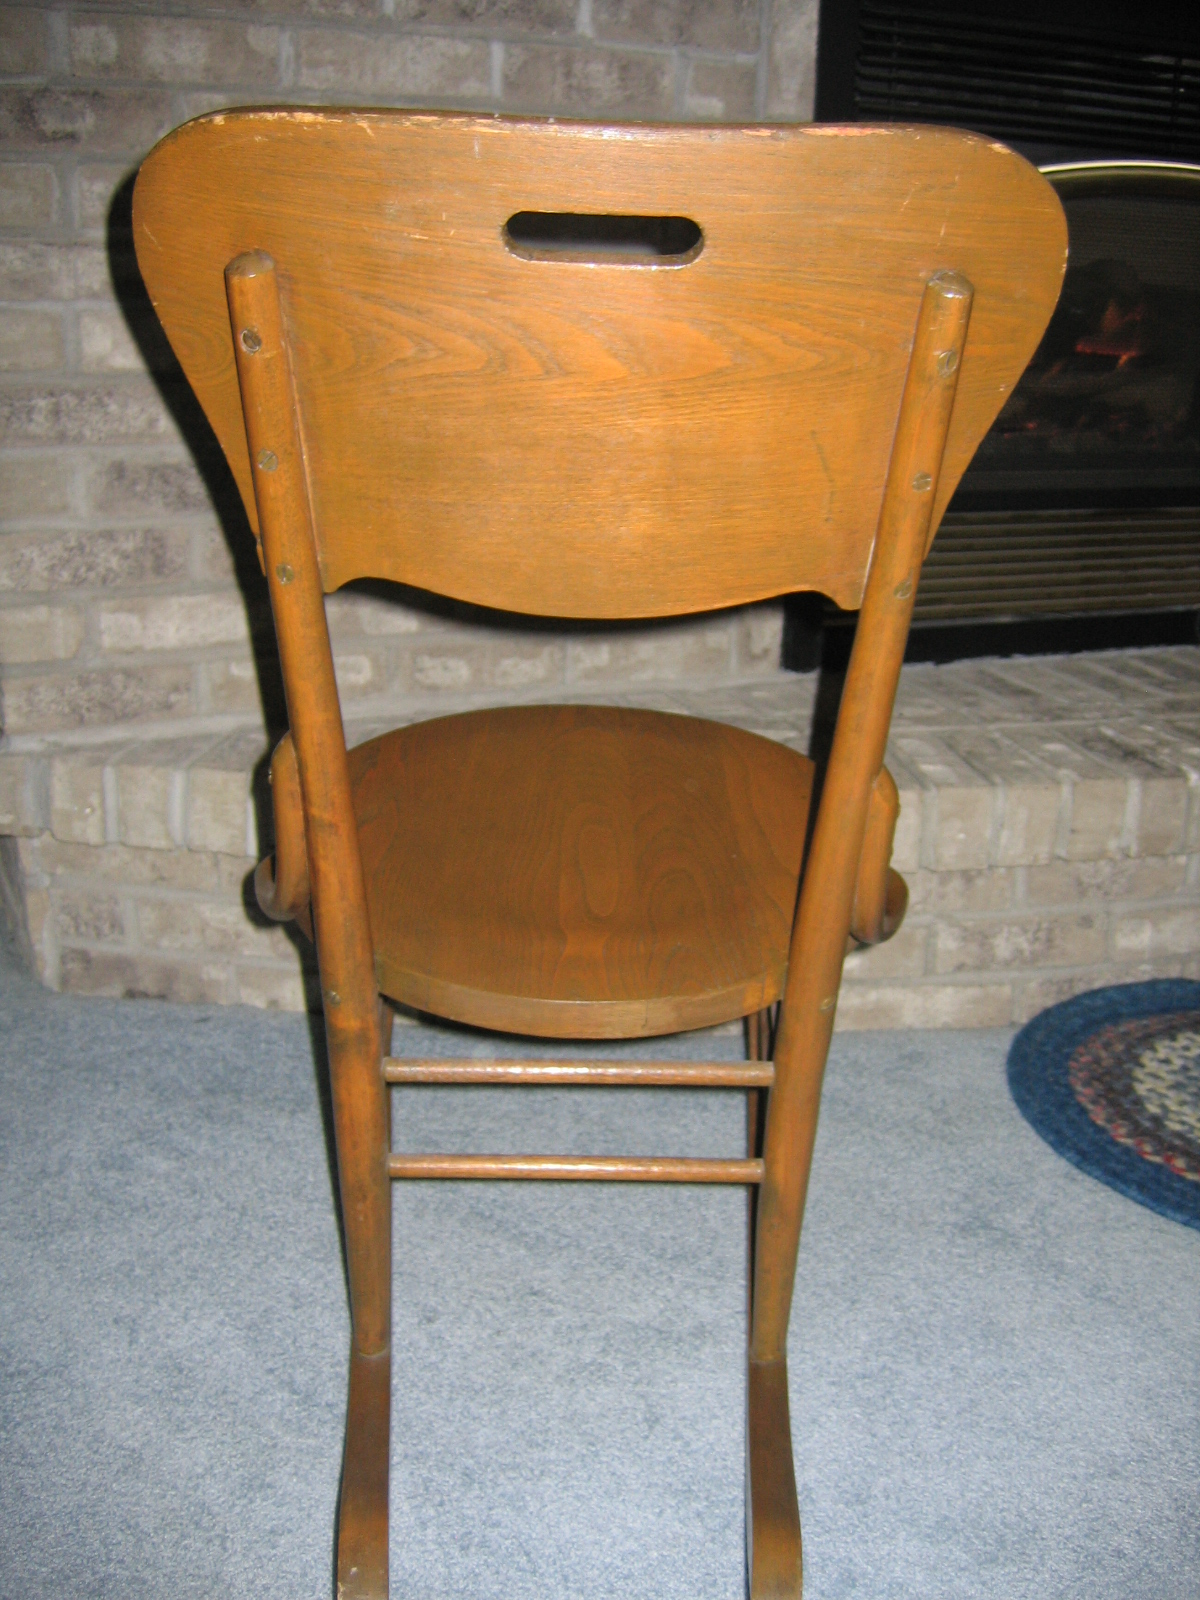 vintage ladies knitting wood rocking chair item 811 for sale classifieds. Black Bedroom Furniture Sets. Home Design Ideas